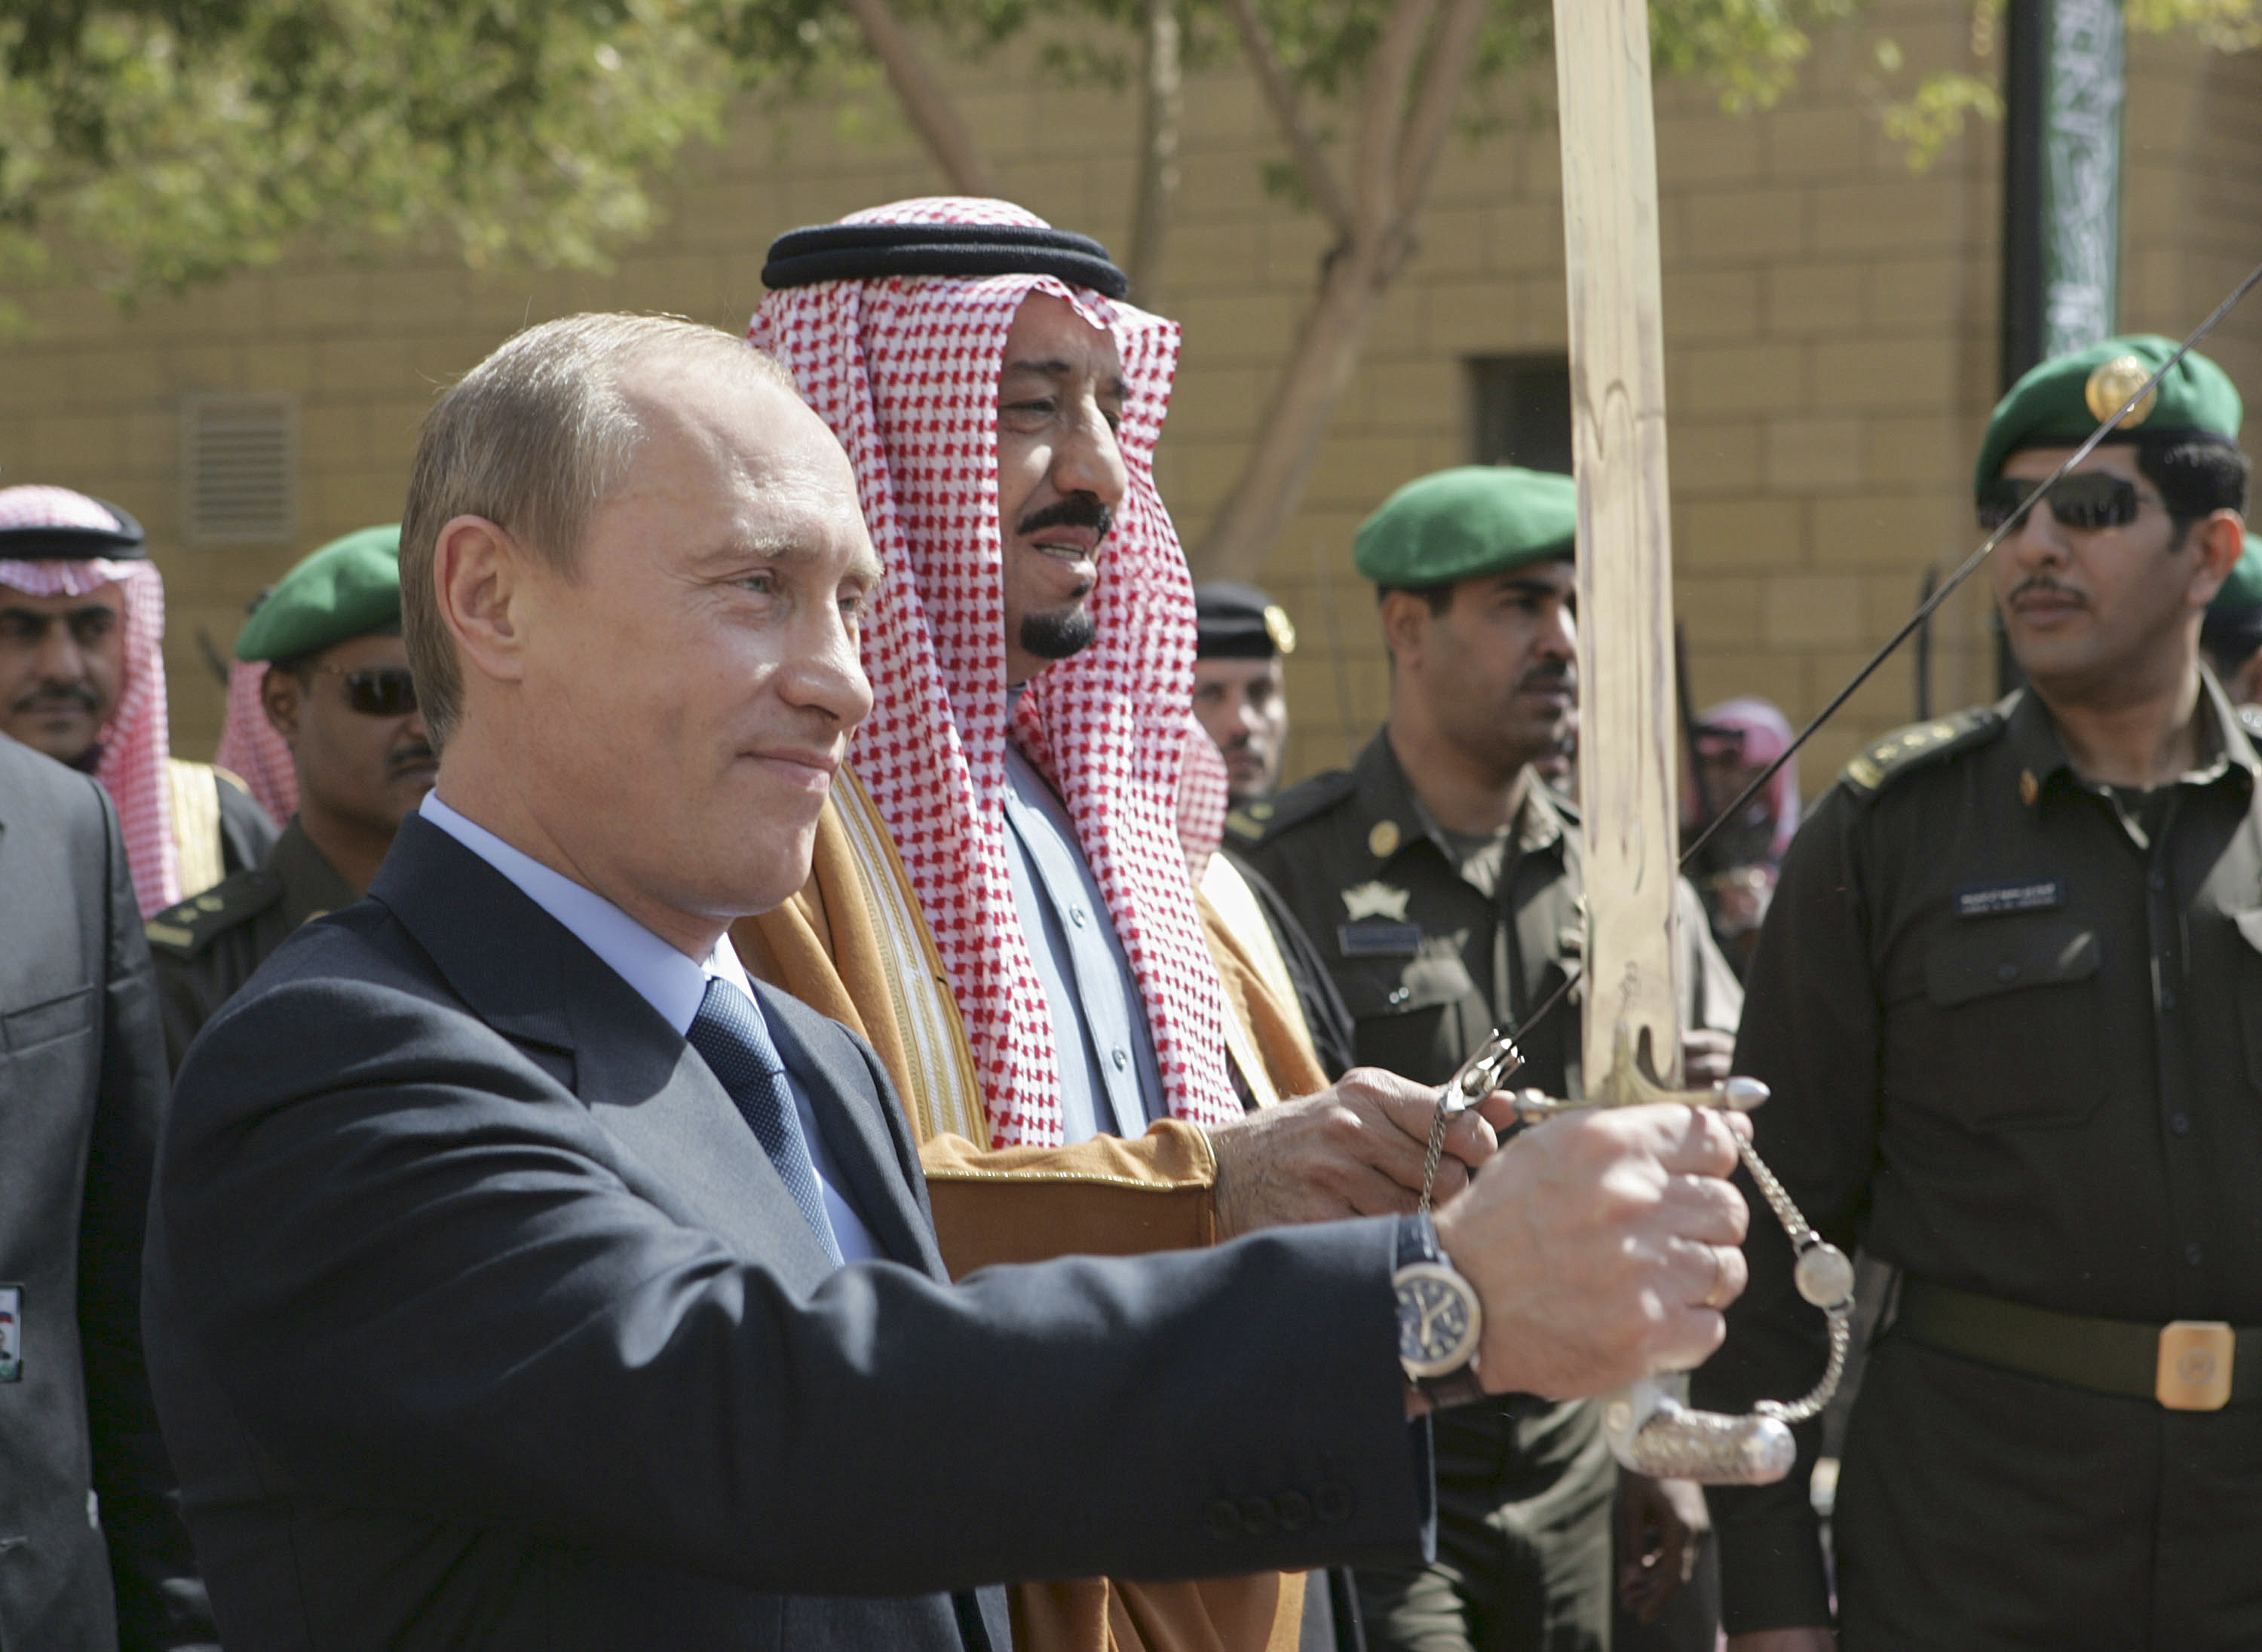 Russia's Vladimir Putin holds an ardah along side Saudi King Salman